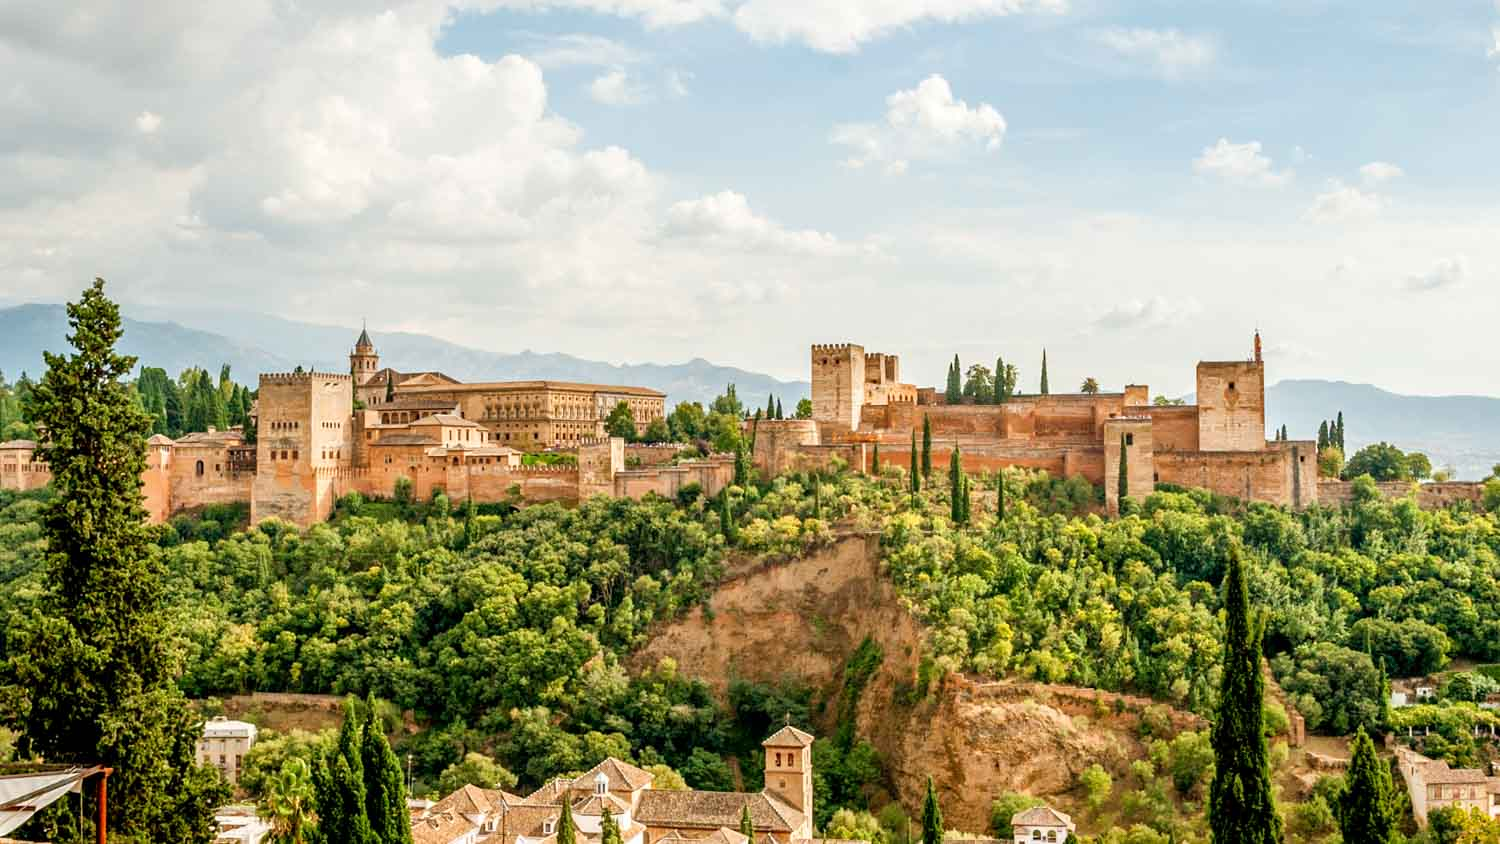 Guided Tours of the Palace of Alhambra in Granada